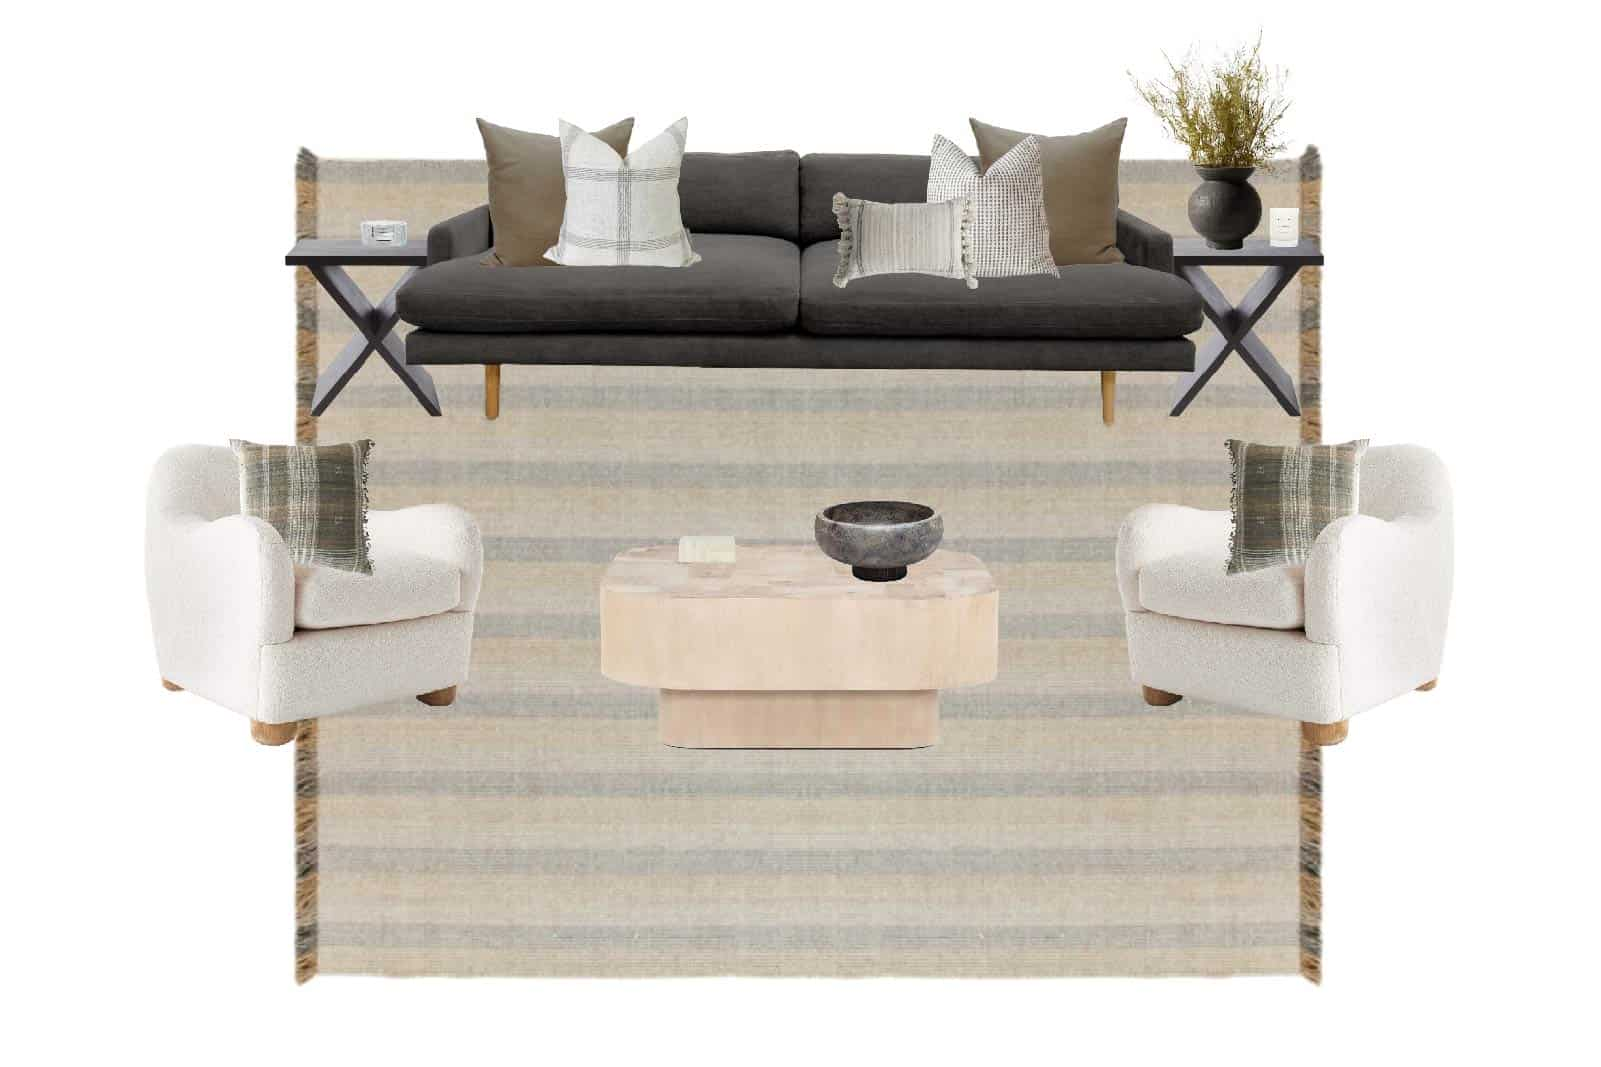 Moody Living Room E-Design by Mindy Gayer Design Co.